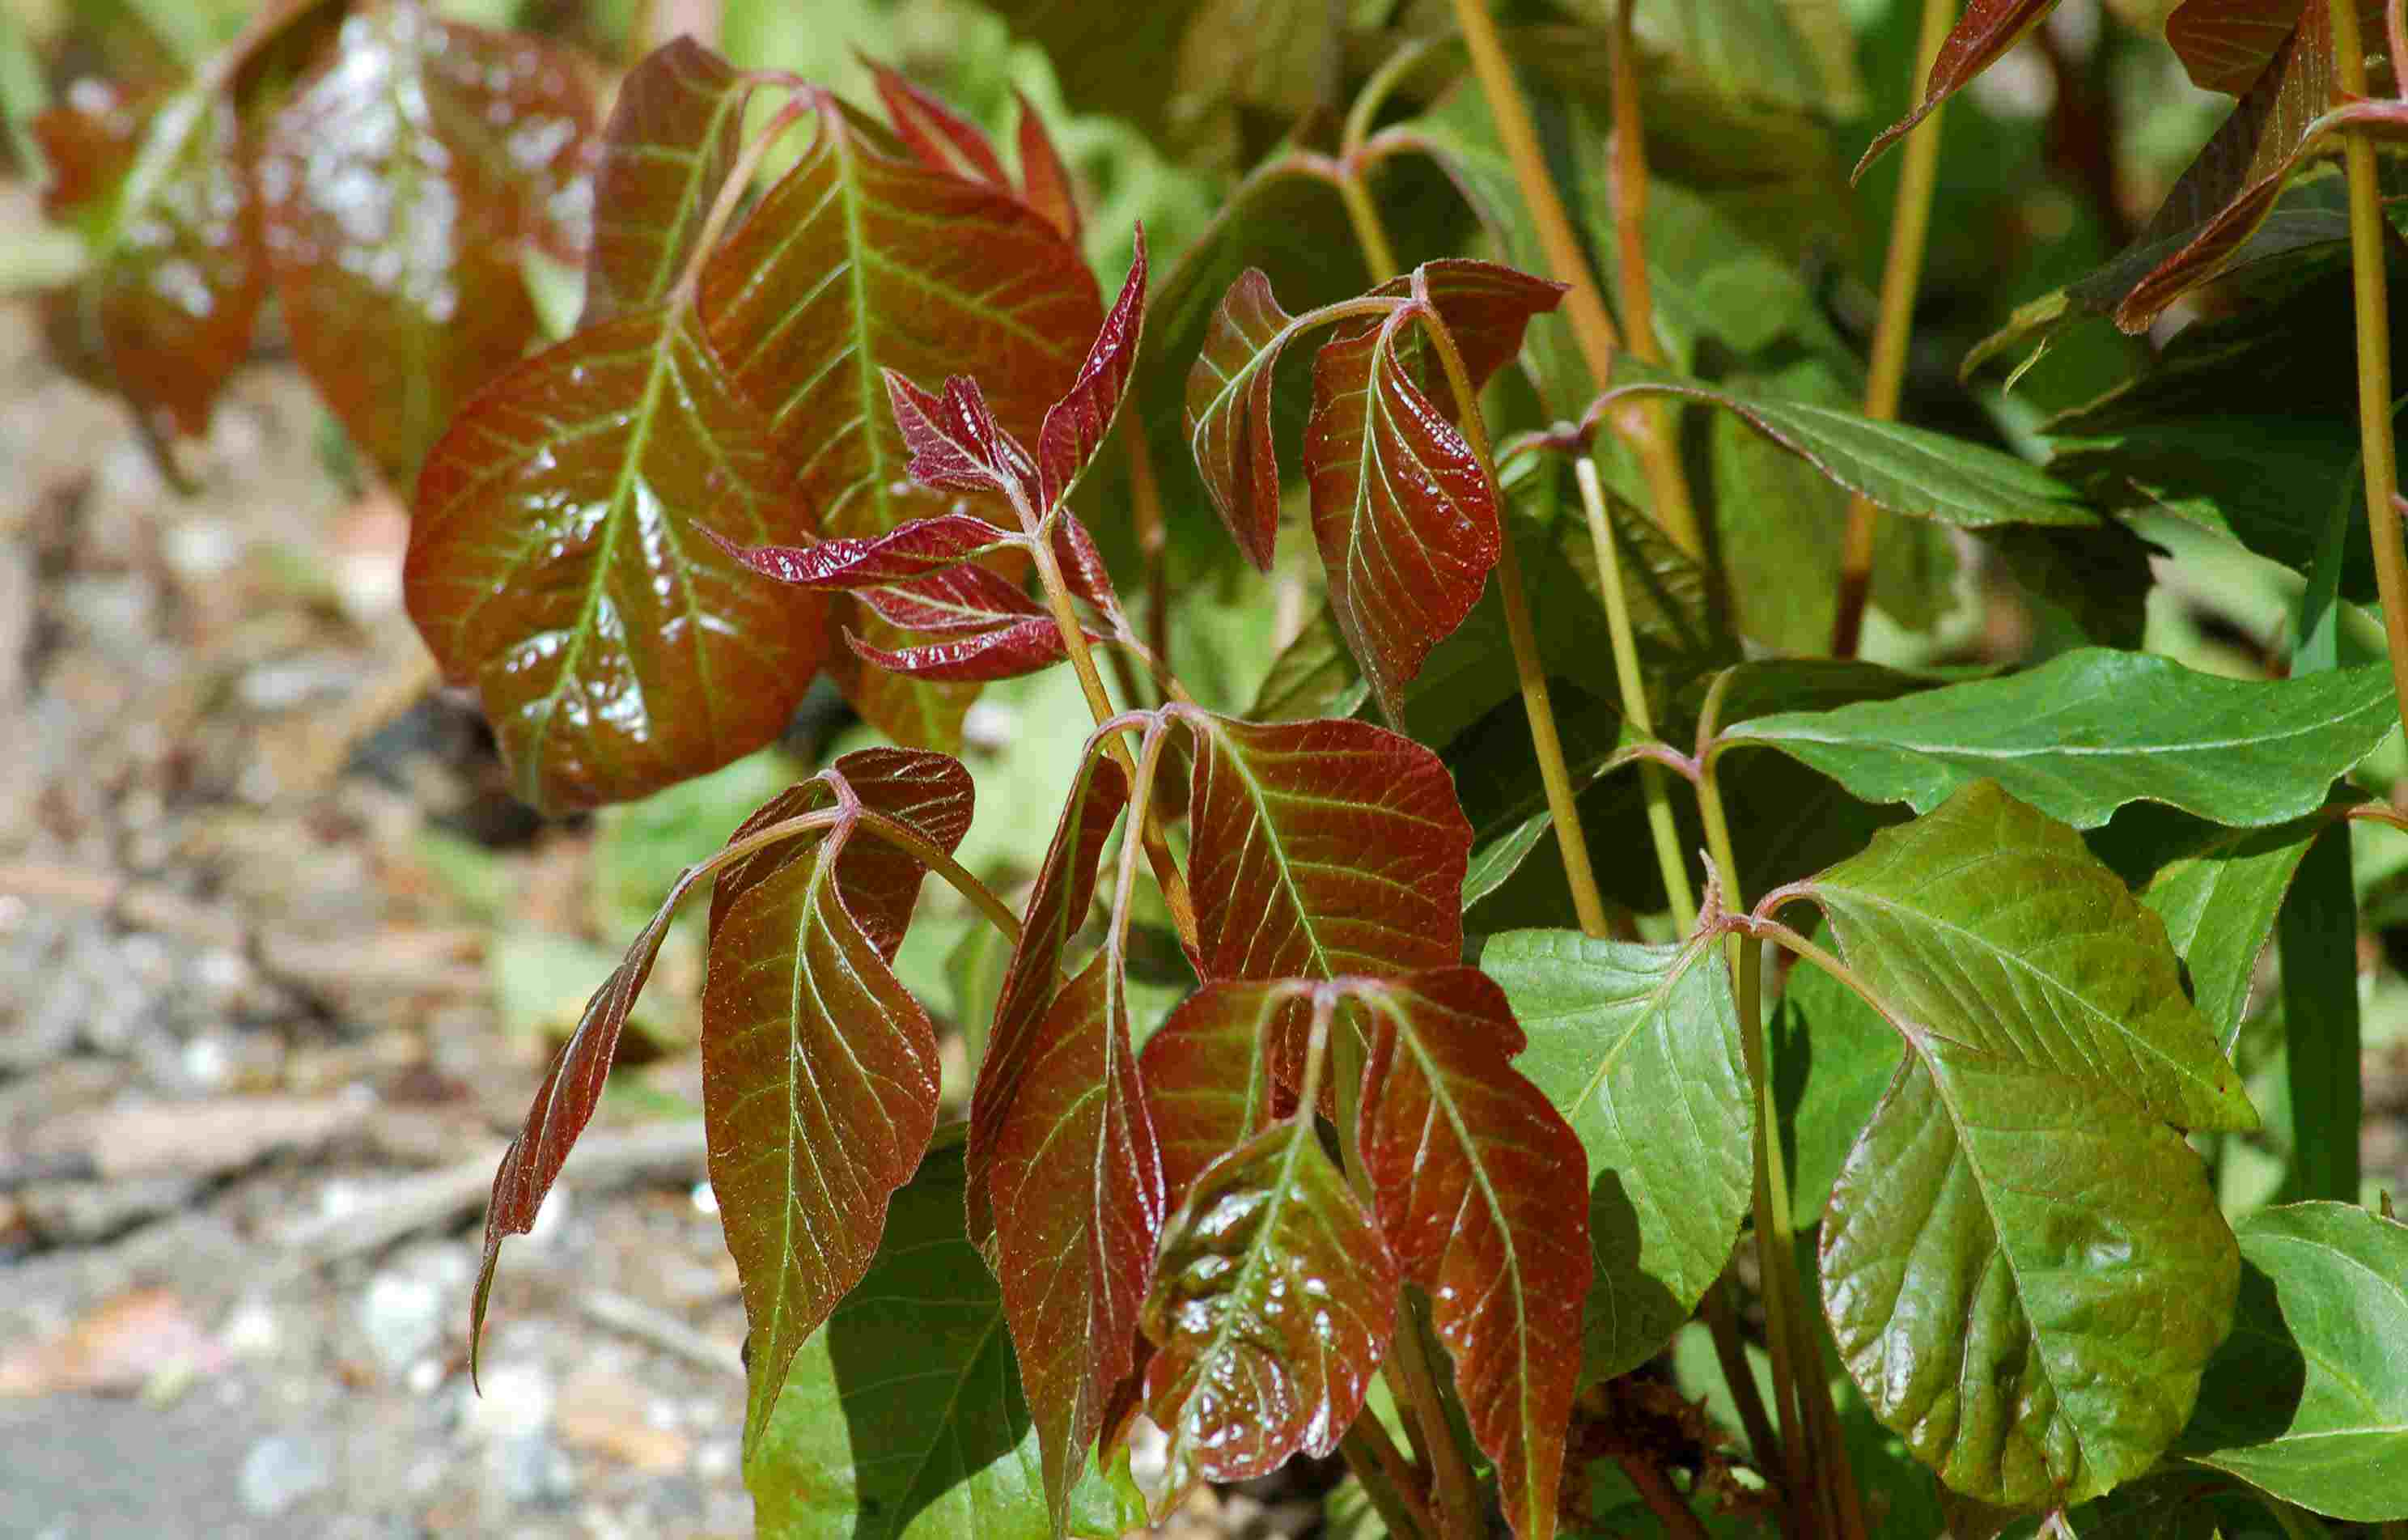 Young leaves of poison ivy in spring with reddish color.